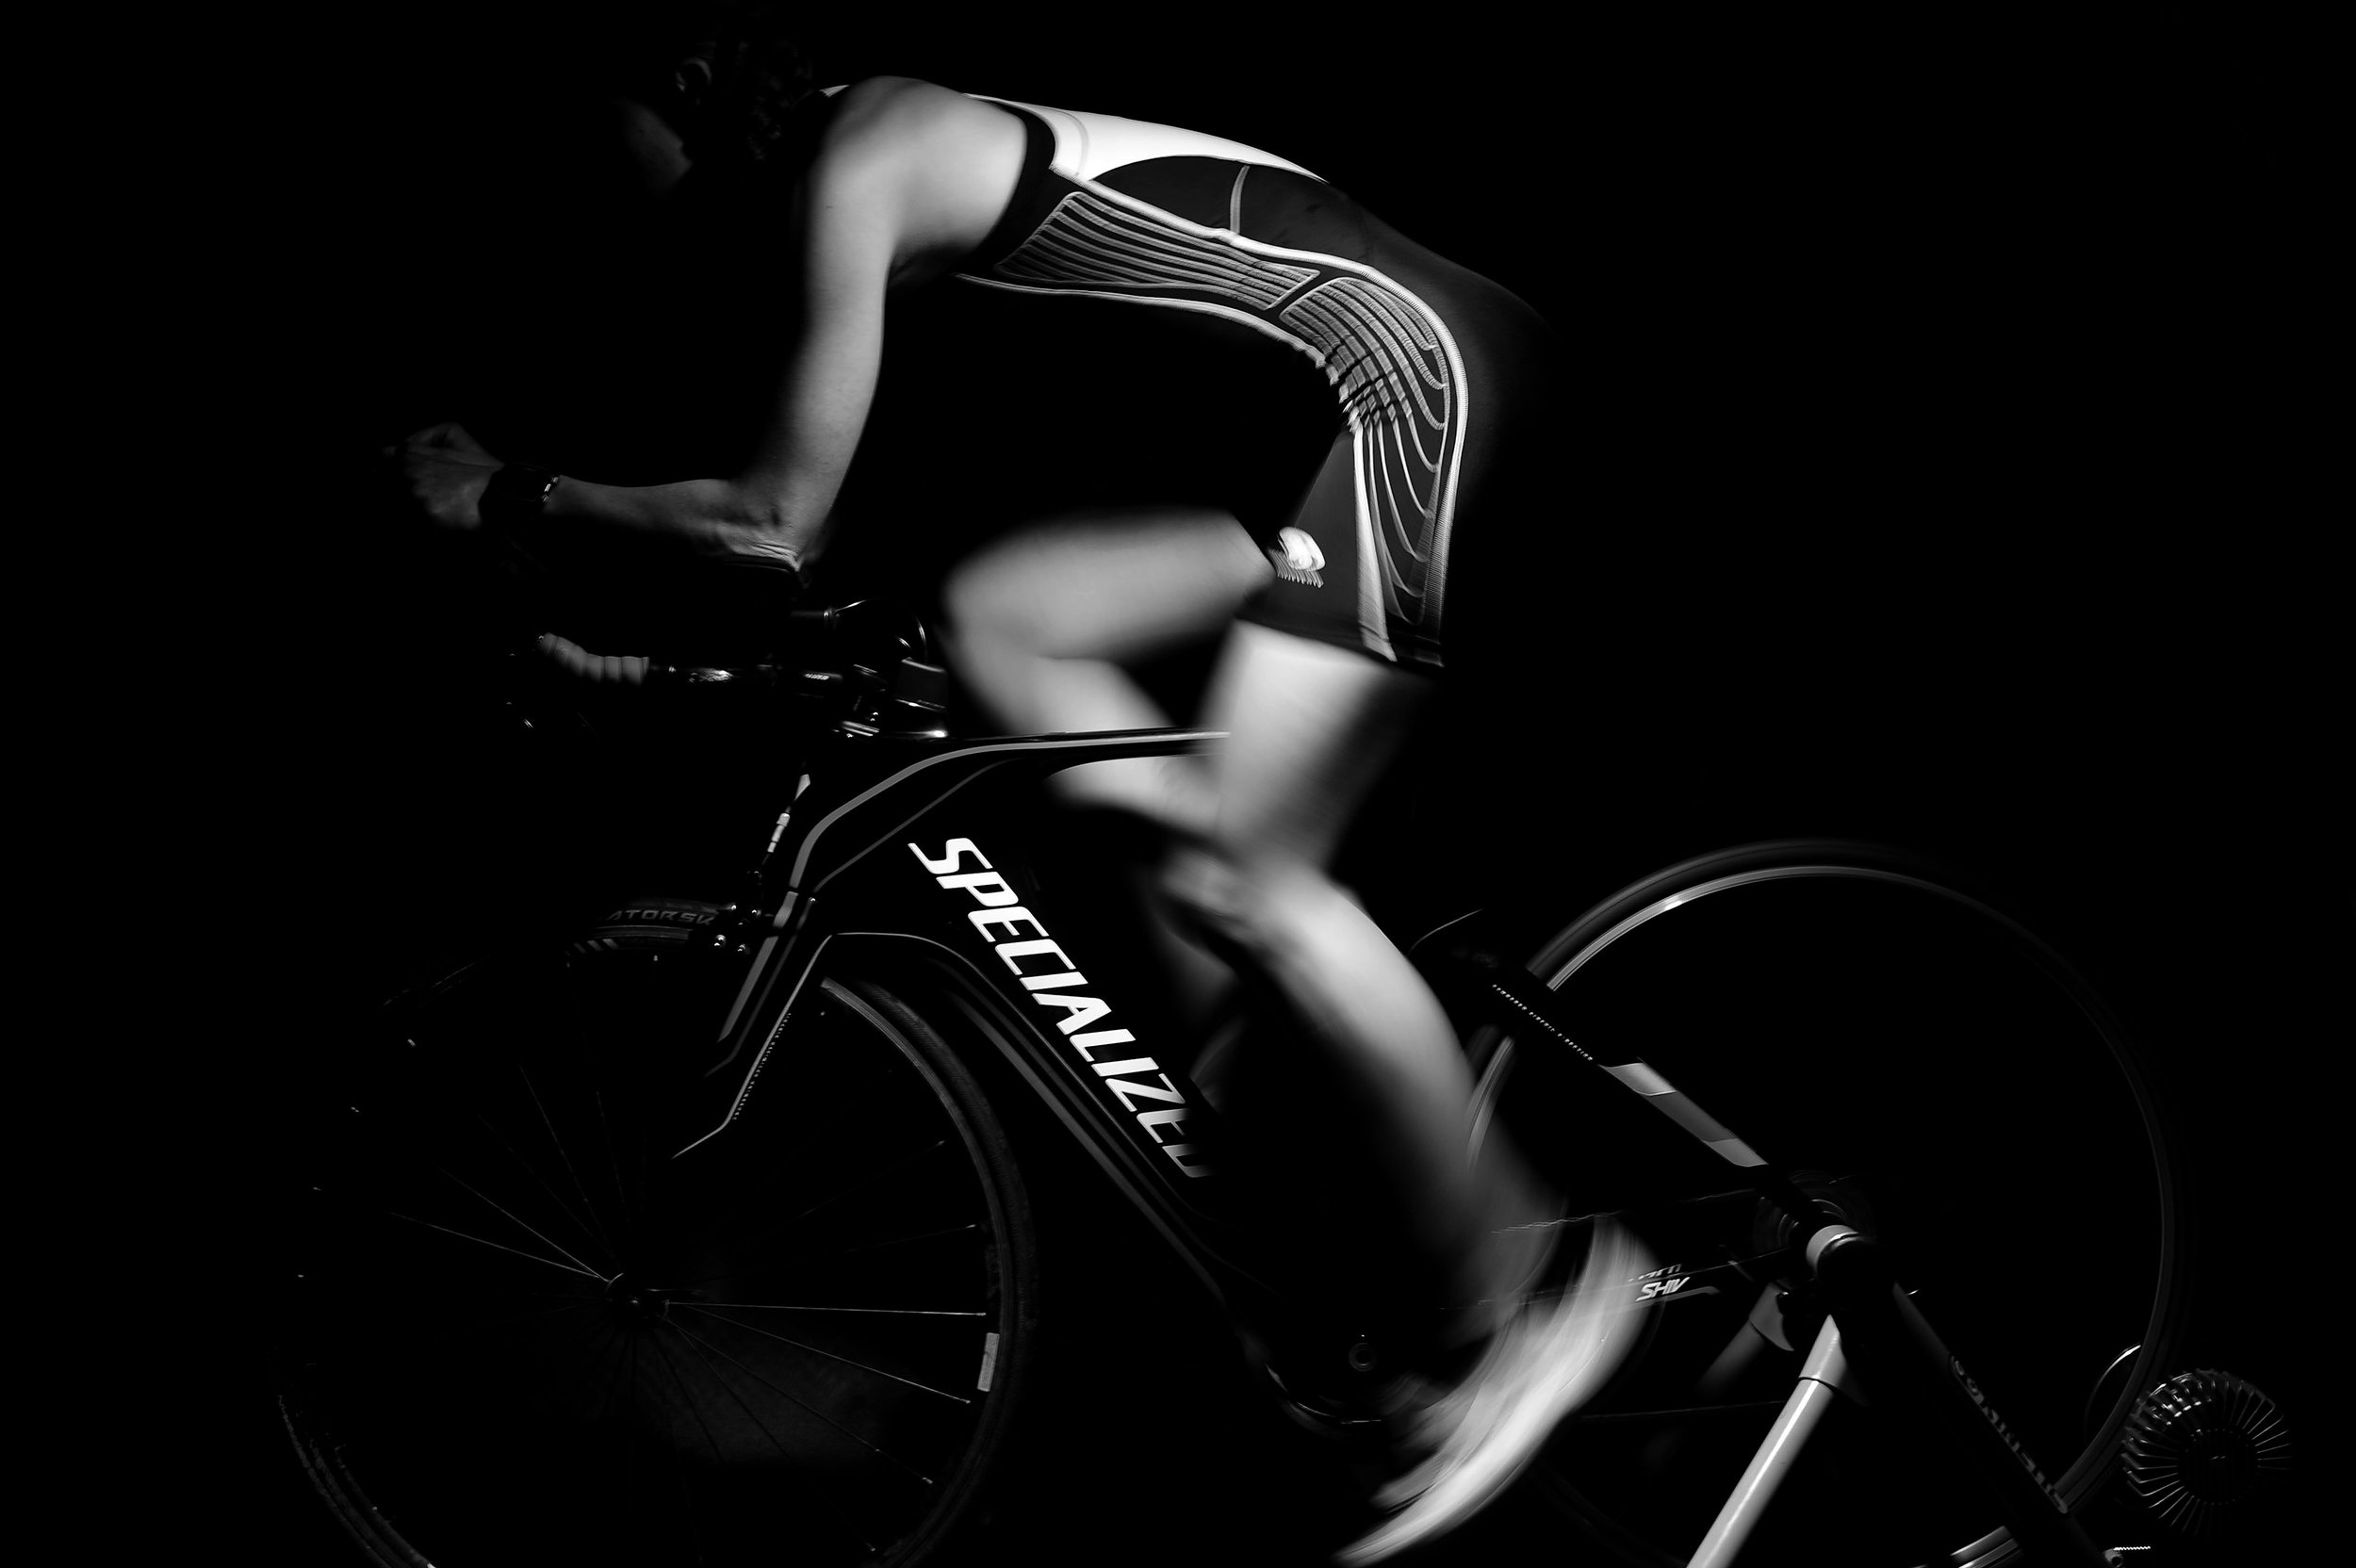 Spin Class is a great cardio work-out that can also build strength.